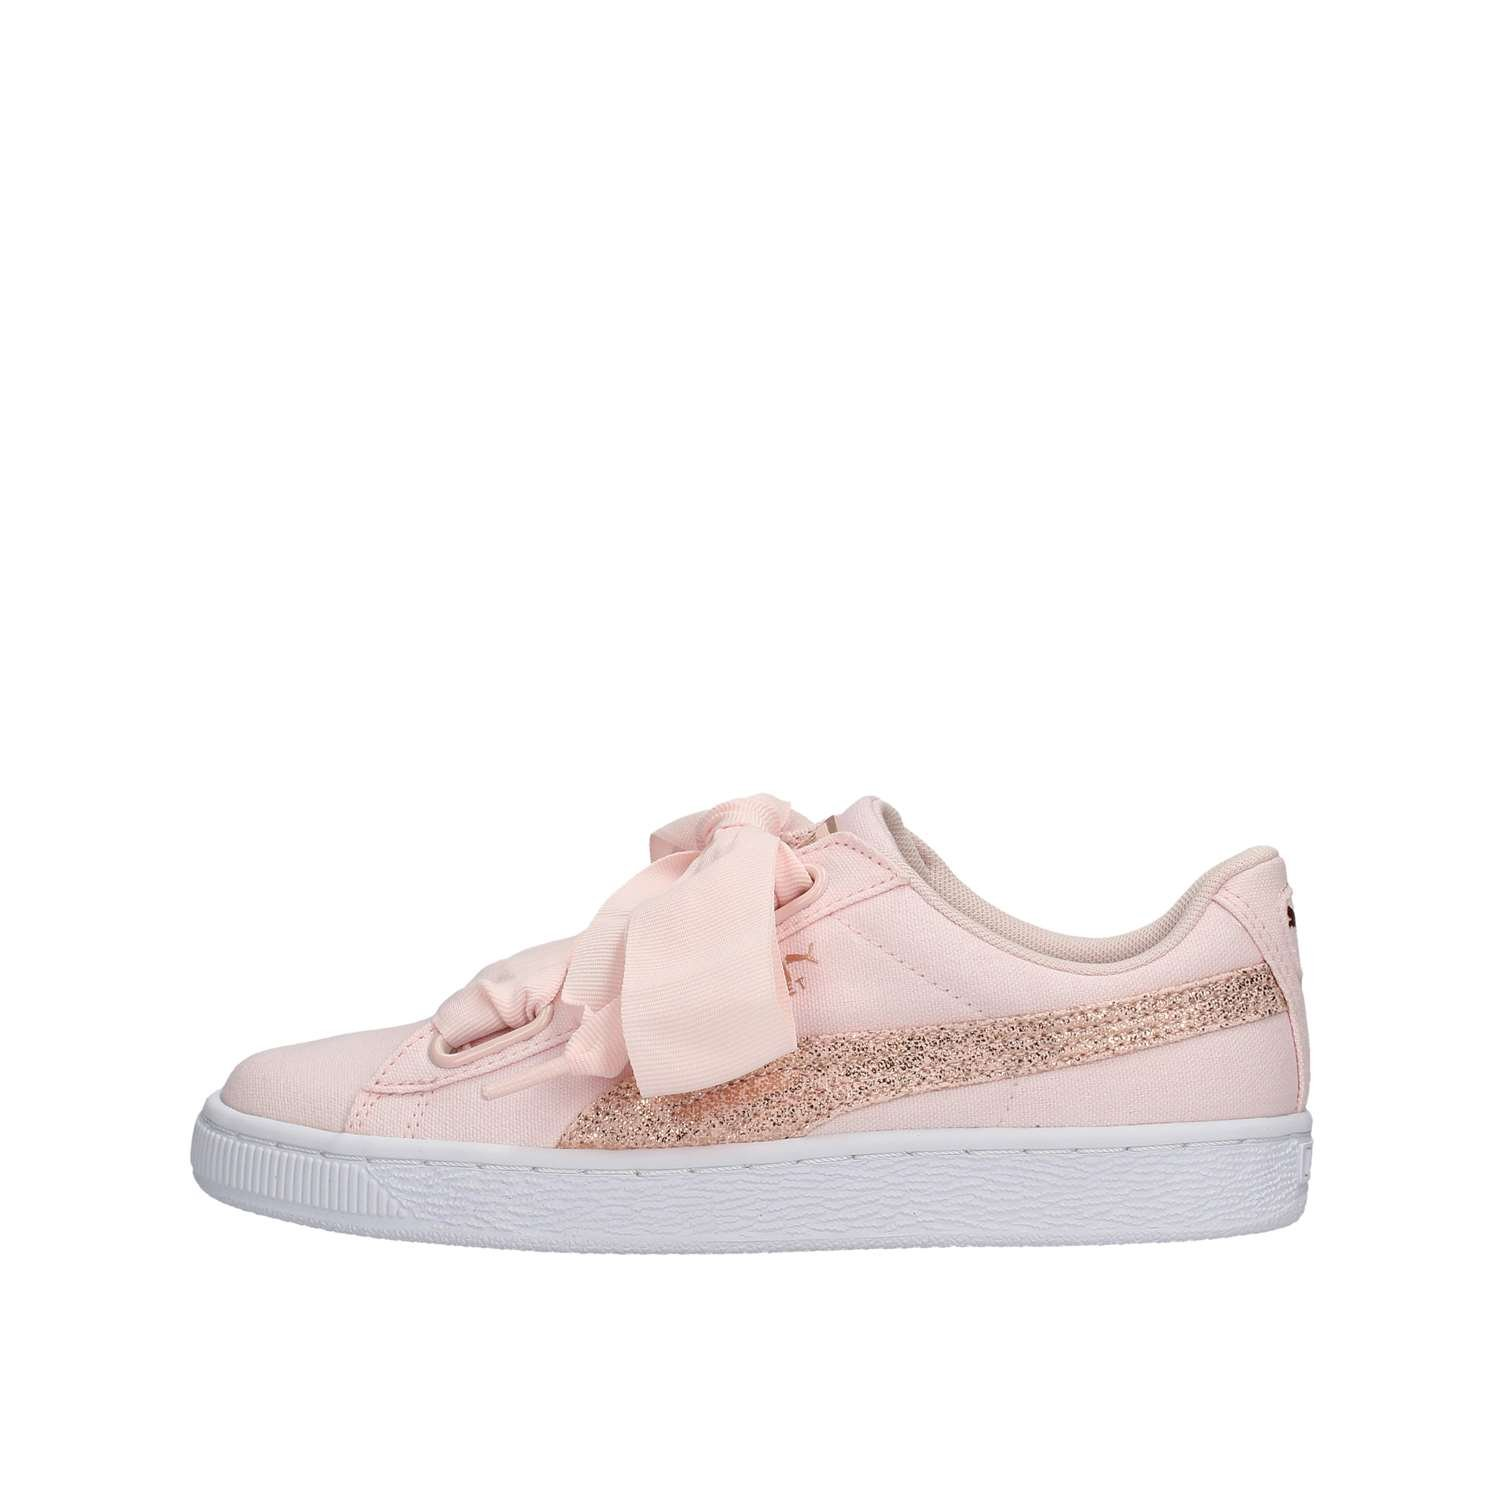 Basket Heart Canvas Wn's Pearl-Puma White-Rose Gold 2018 Puma 36 EU|Rosa